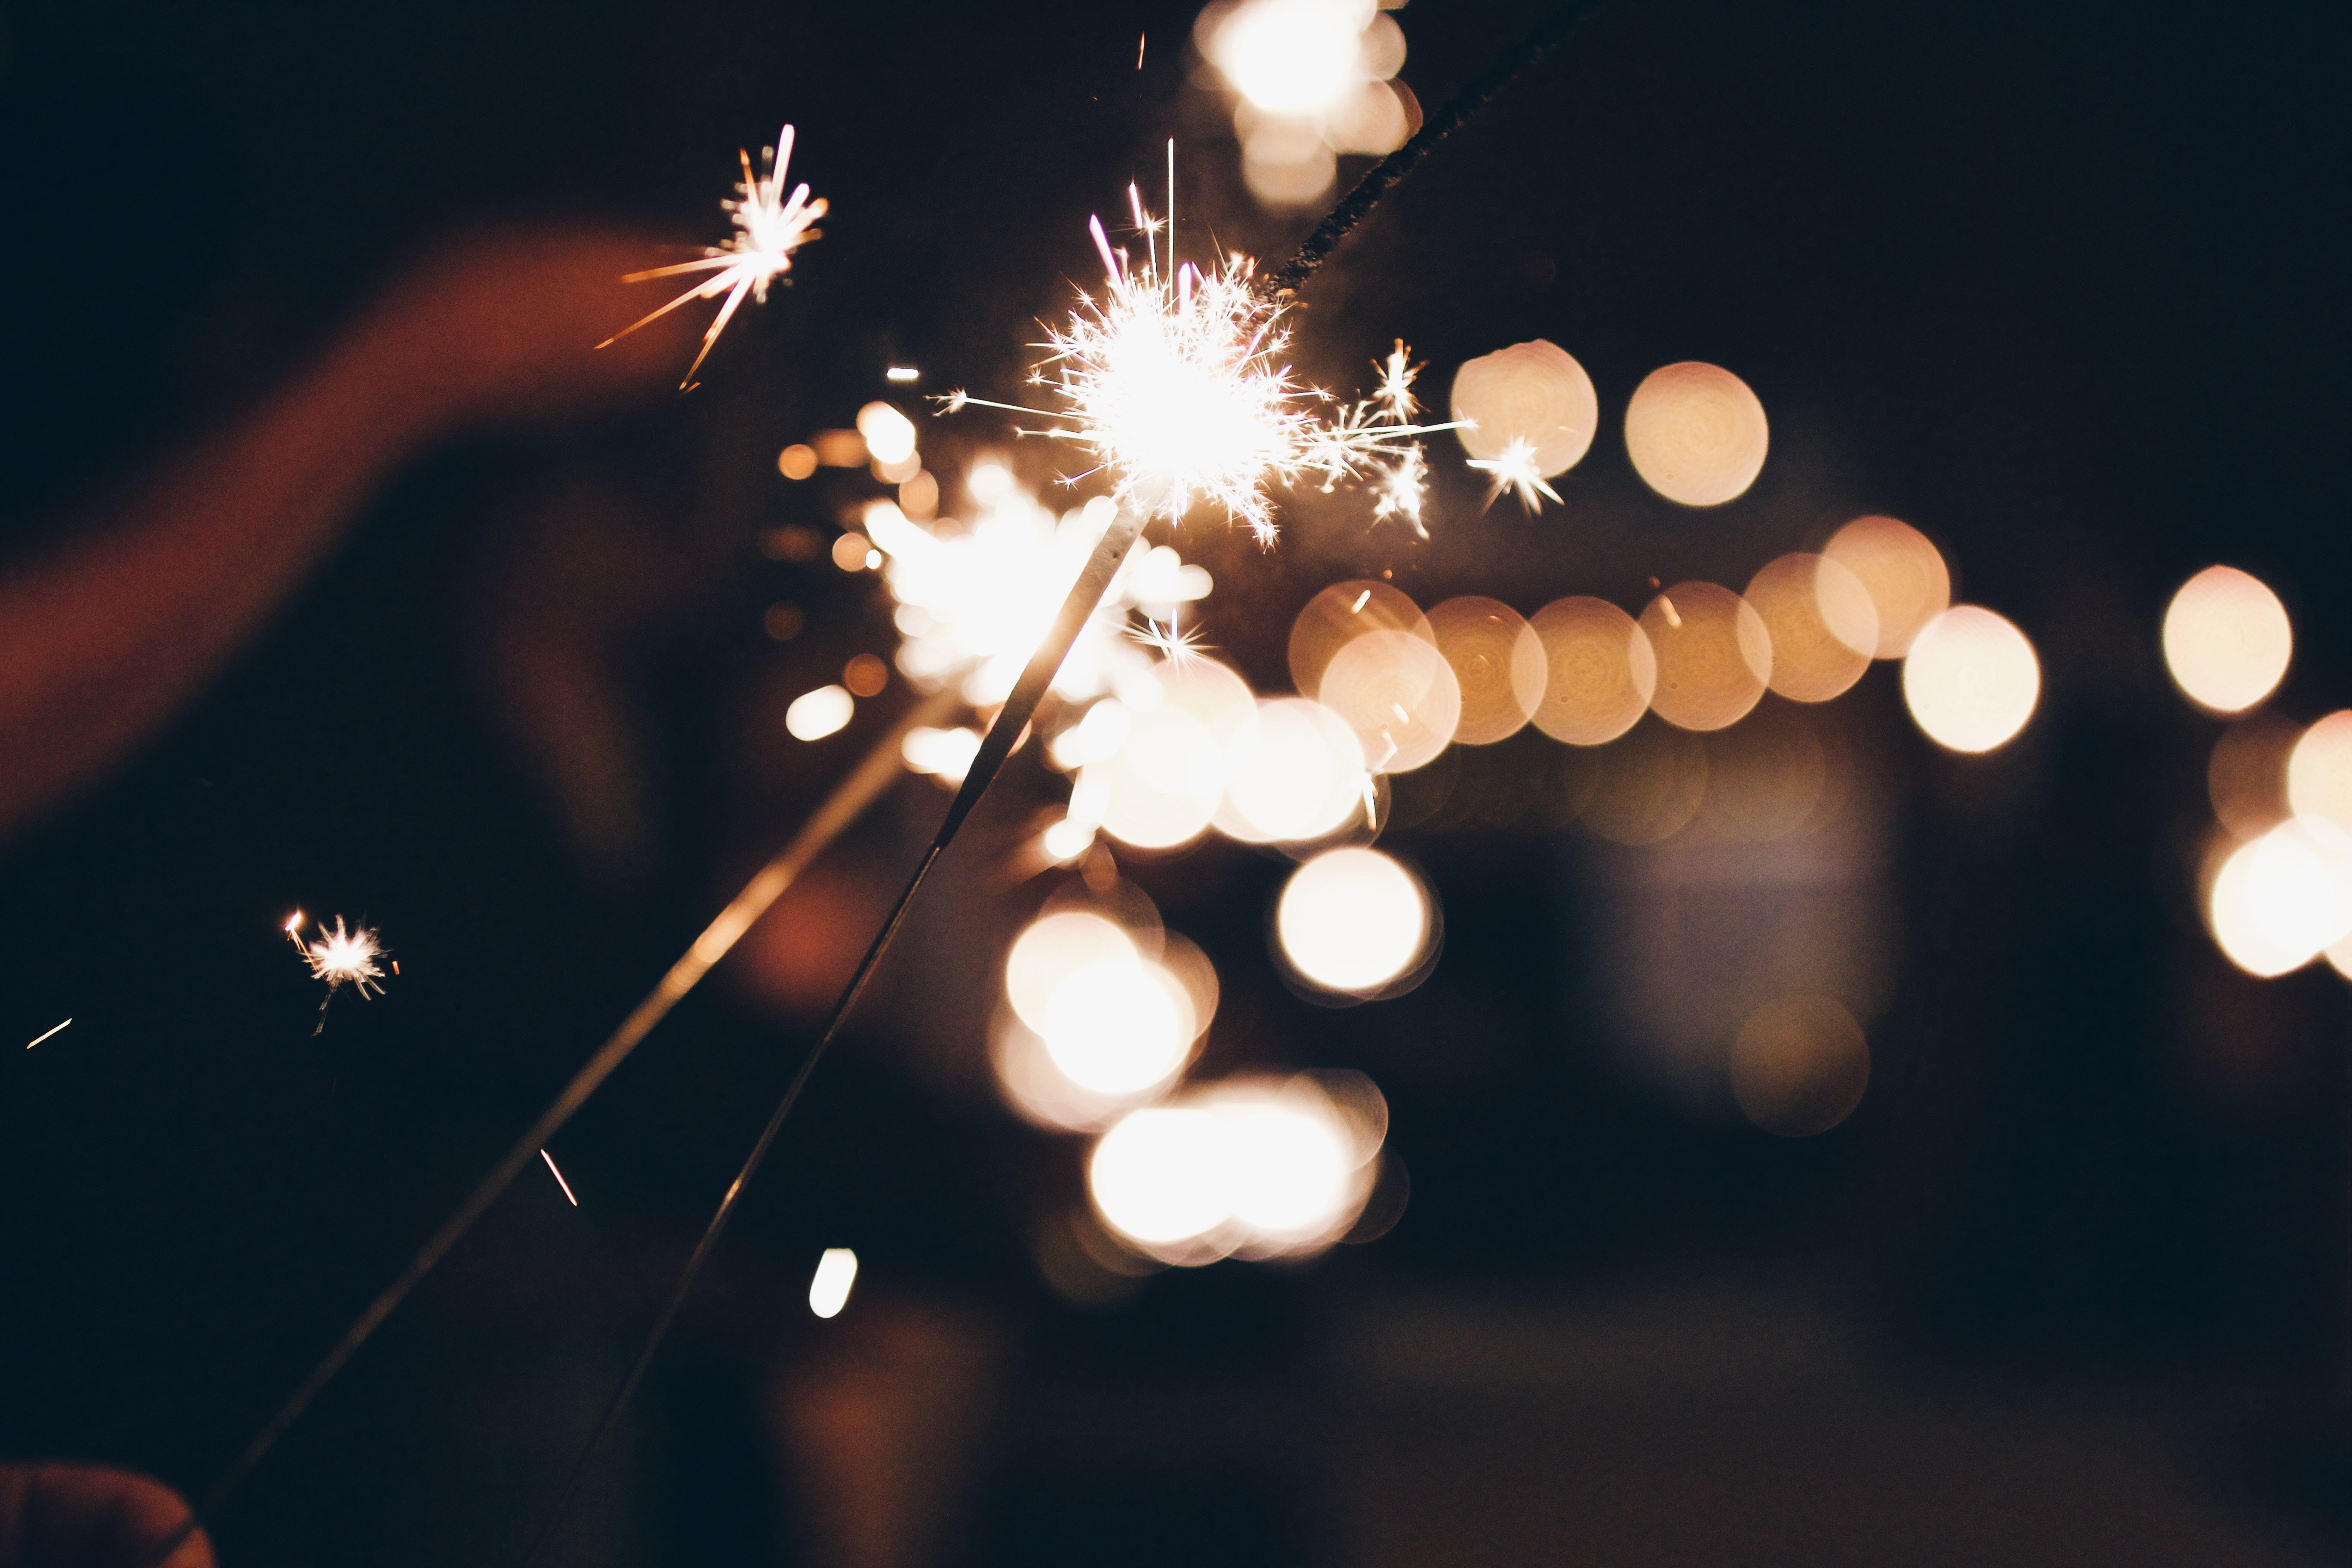 Zendrive's Driving Resolutions For The New Year